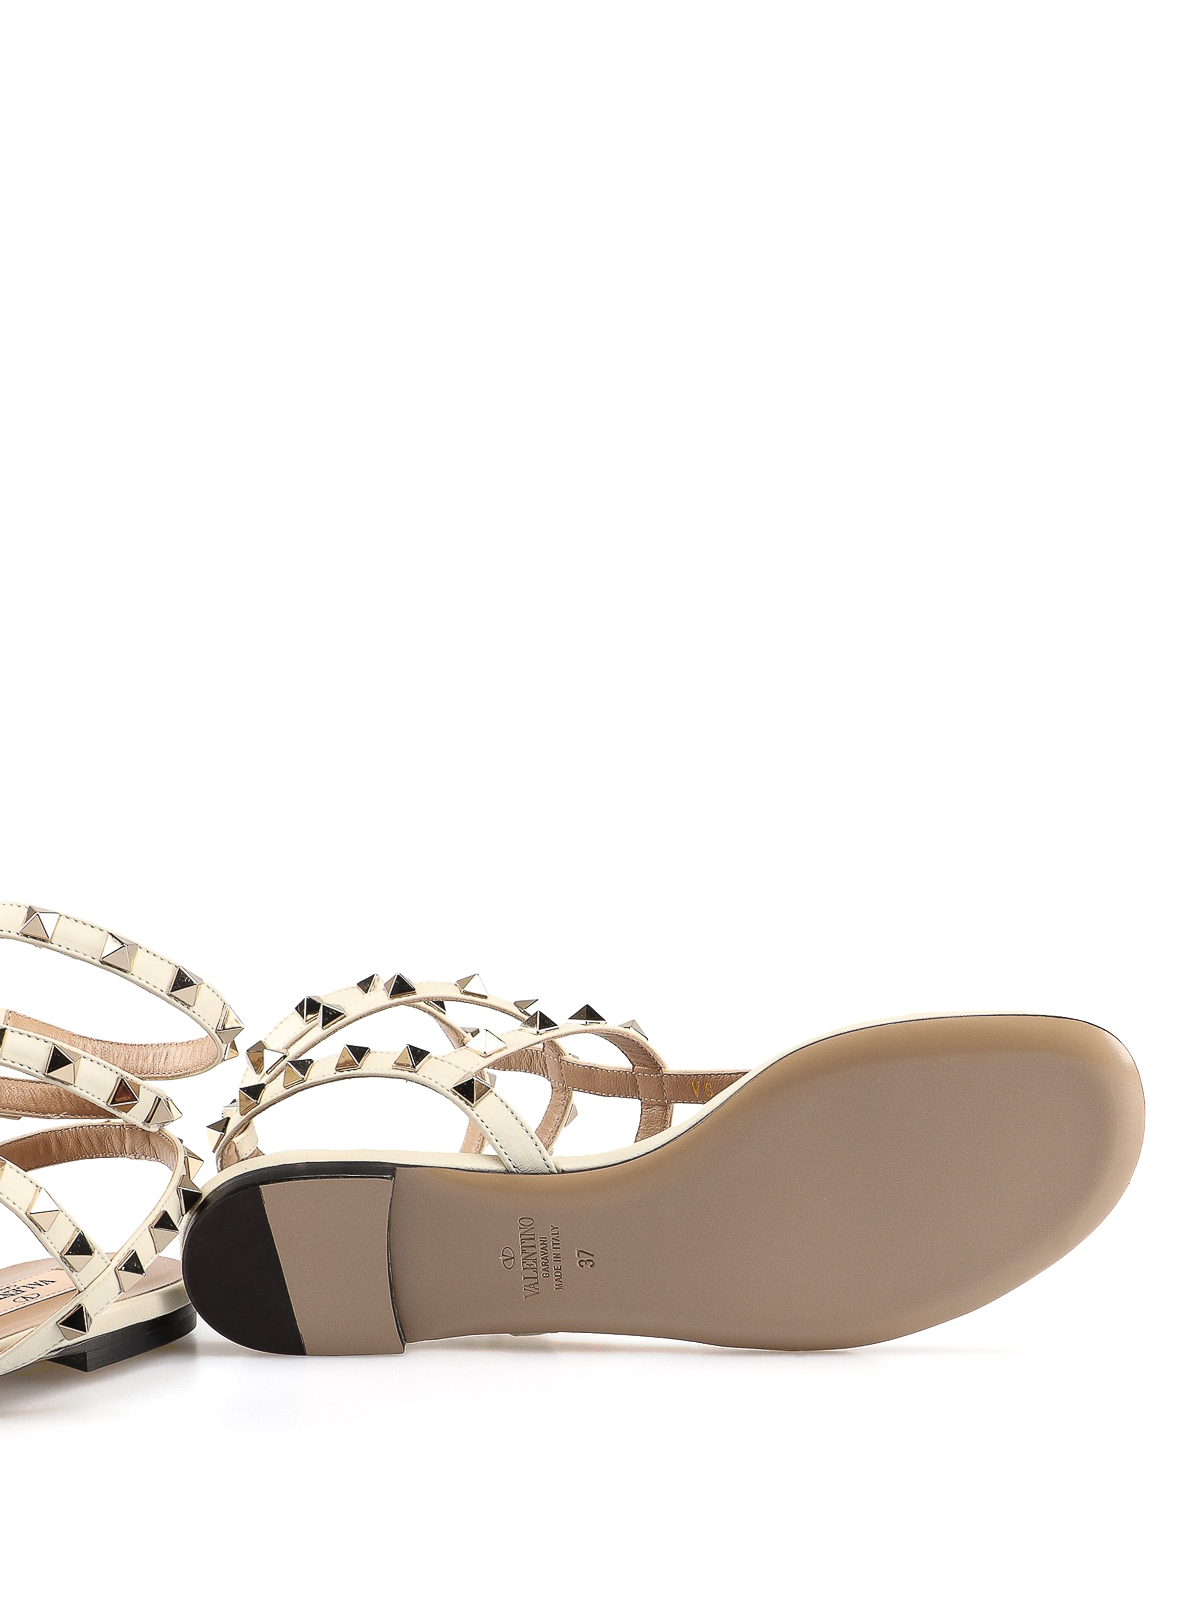 25c274b68 Valentino Garavani - Rockstud white leather thong sandals - sandals ...